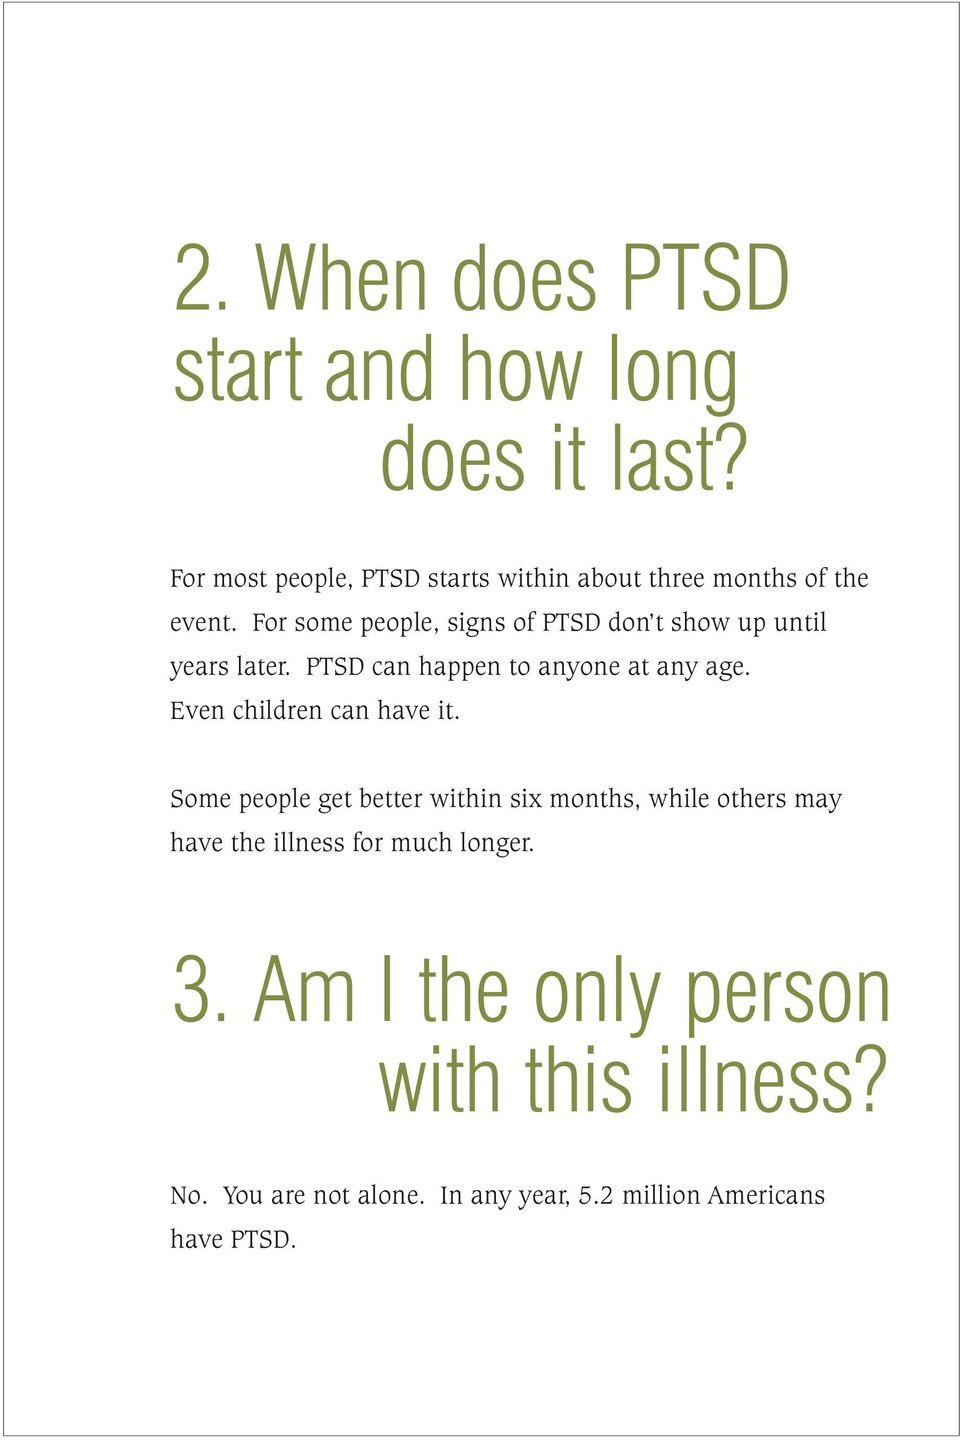 For some people, signs of PTSD don t show up until years later. PTSD can happen to anyone at any age.